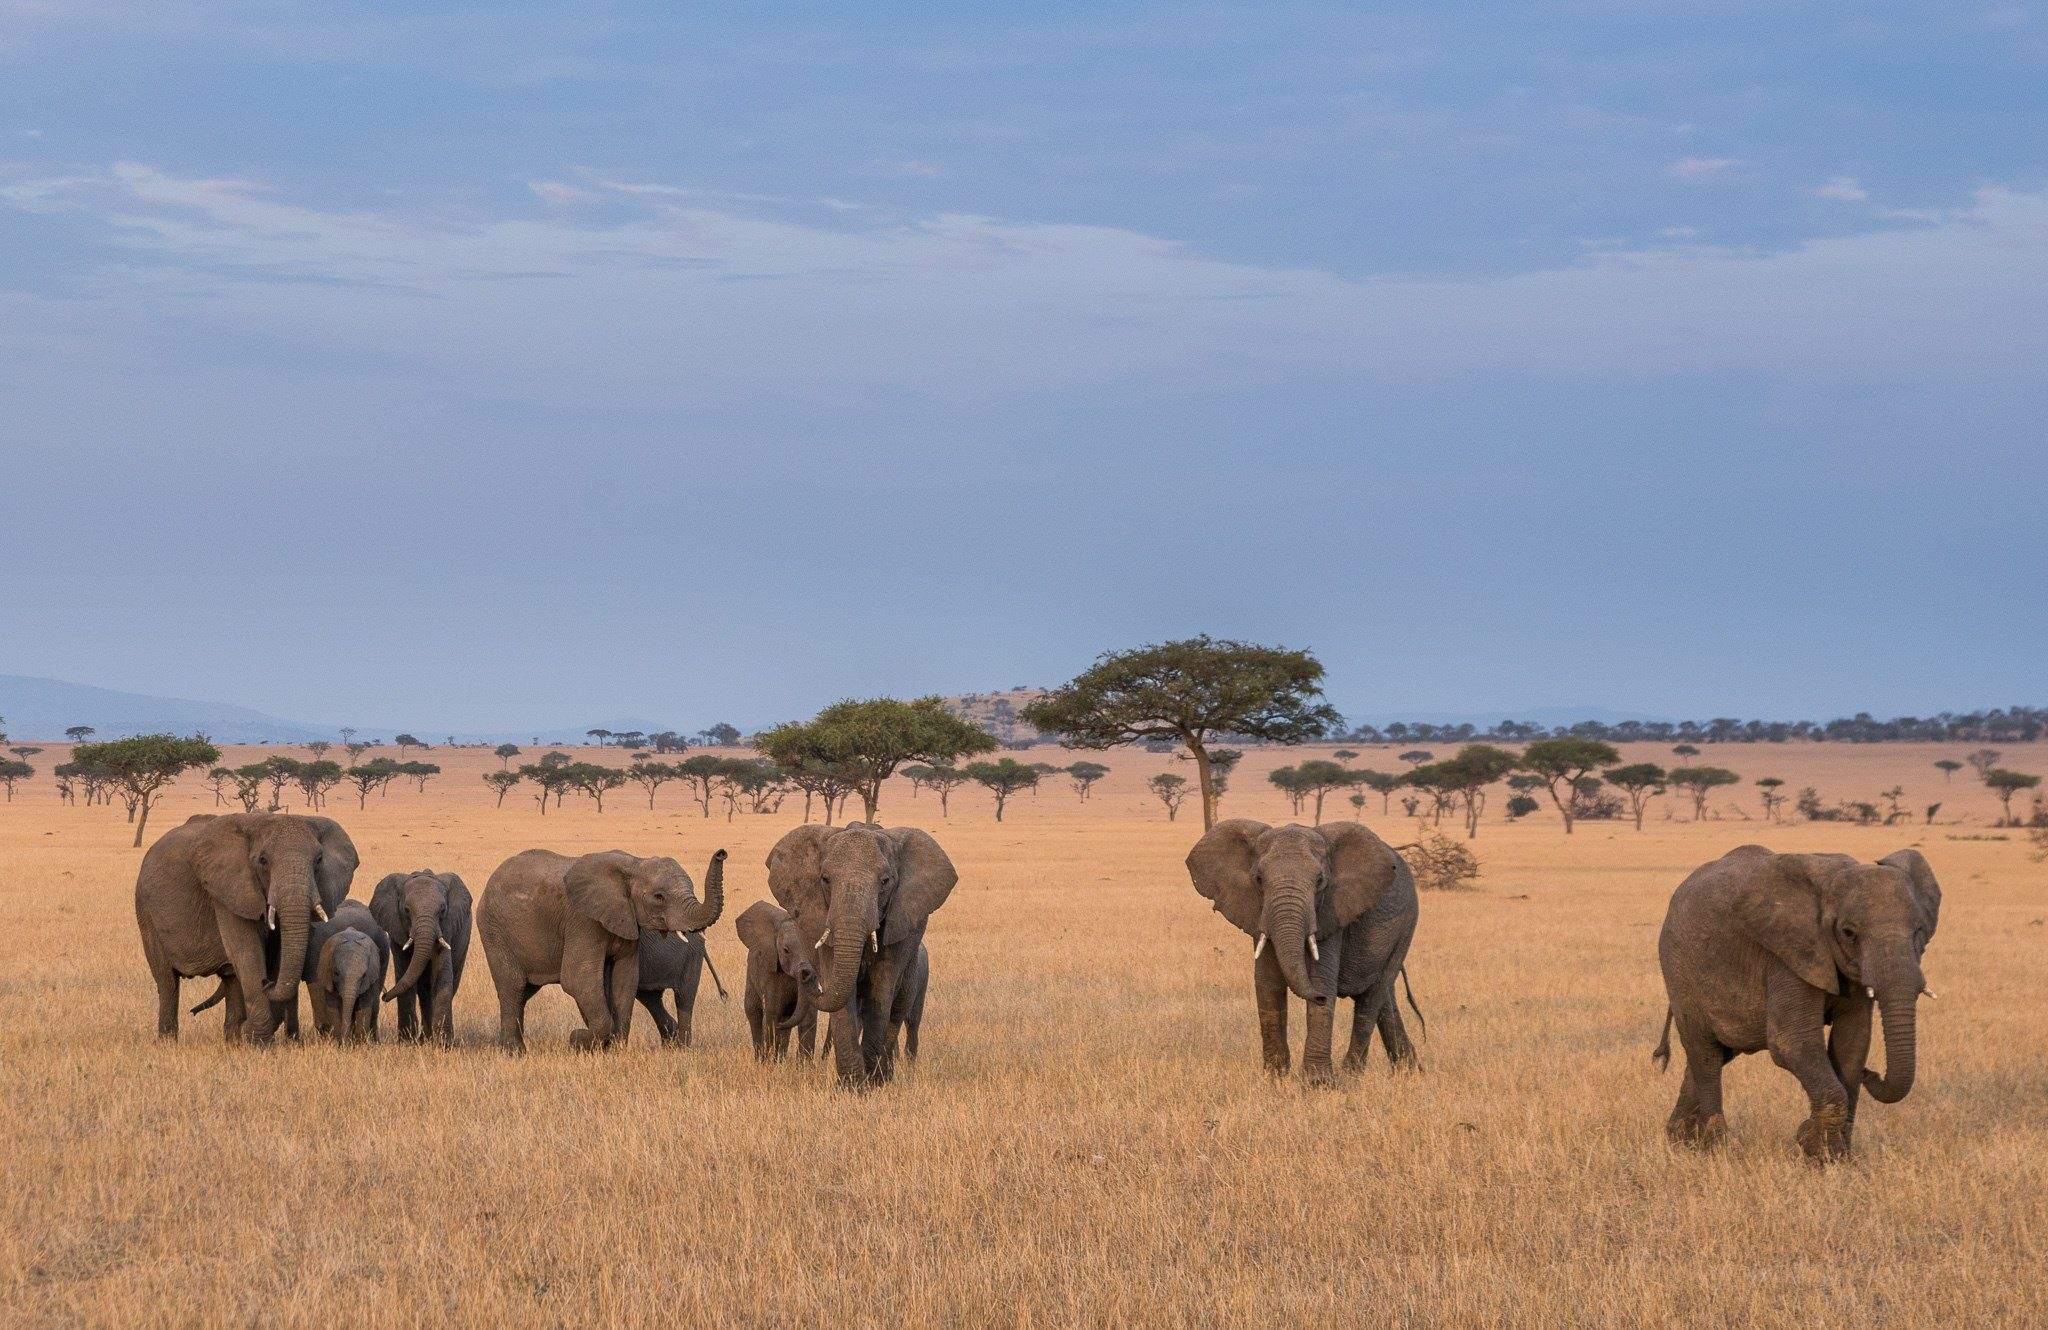 a herd of 10 elephants on the plains of the Serengeti on this northern Tanzania safari